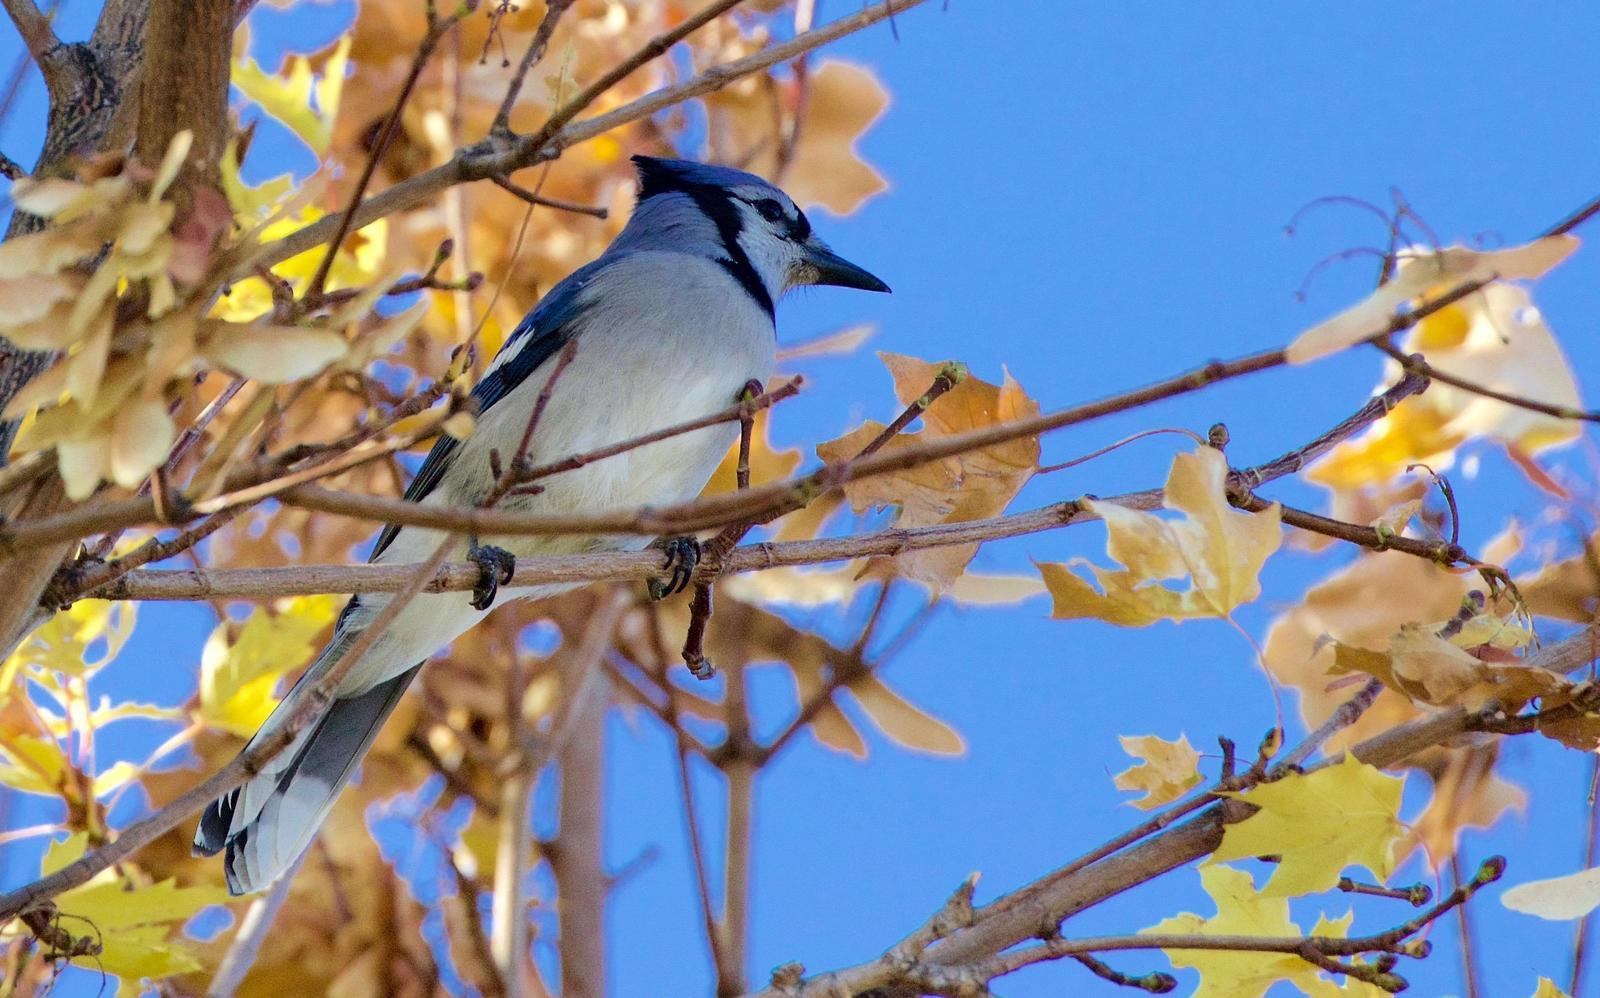 Blue Jay Photo by Kathryn Keith